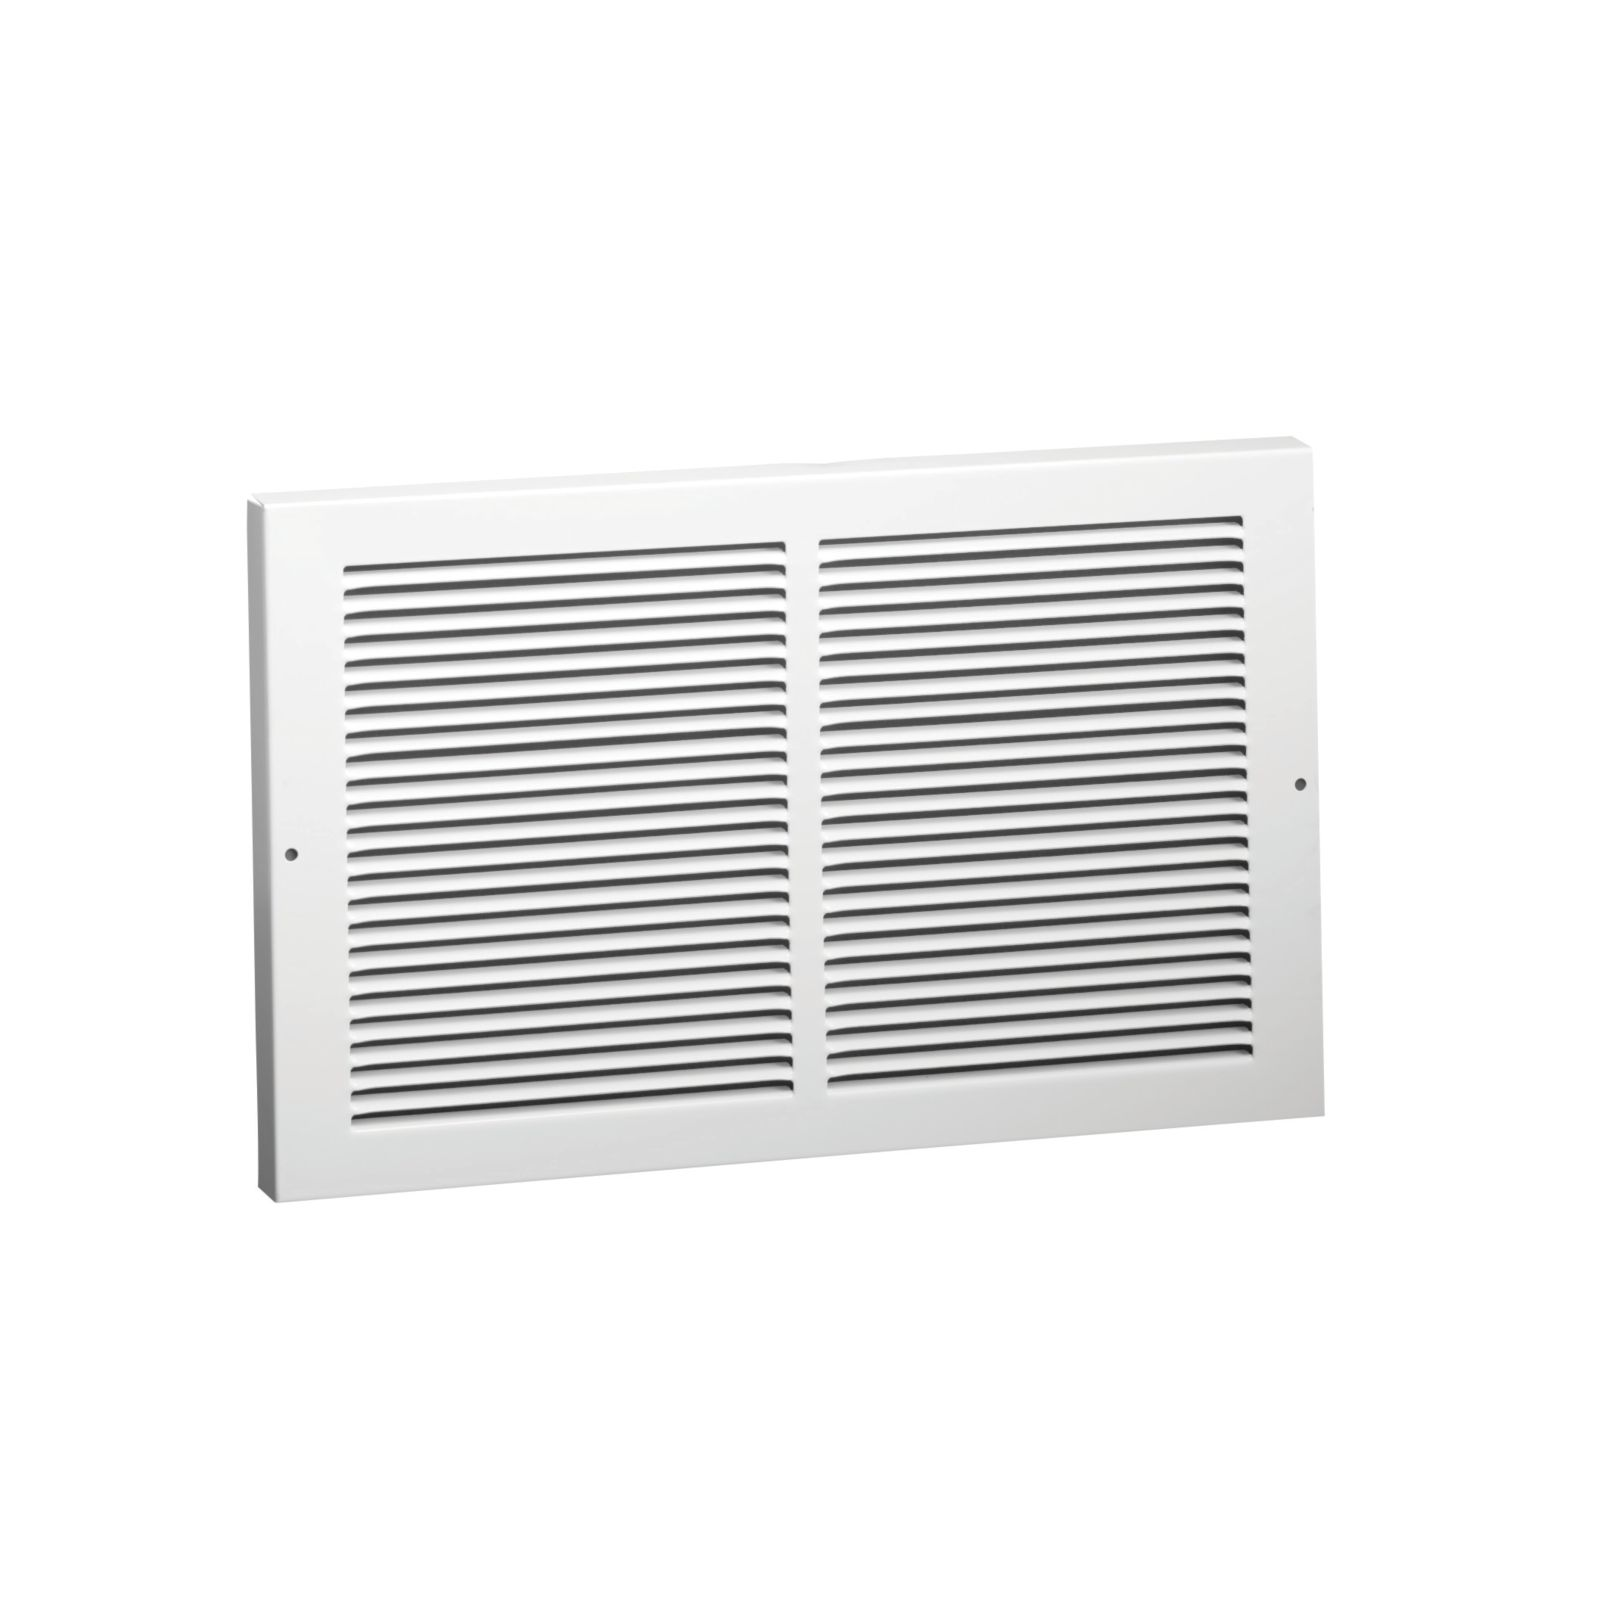 "Hart & Cooley 043649 - #657 Steel Baseboard Return Grille, White Finish, 14"" X 6"""